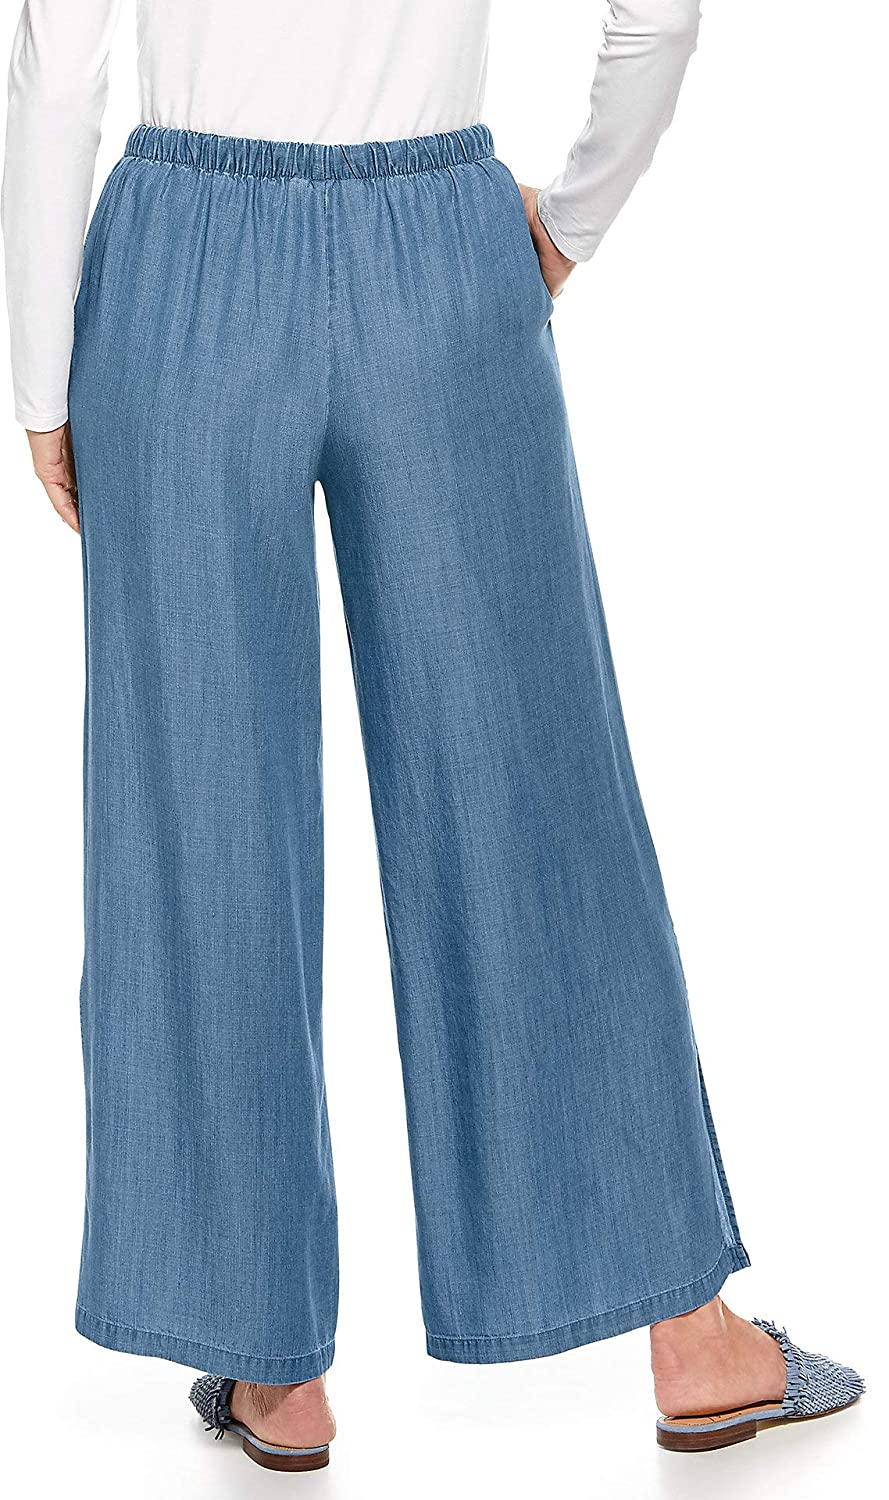 1d72b49287 Coolibar UPF 50+ Women's Enclave Wide Leg Pant - Sun Protective at Amazon  Women's Clothing store: